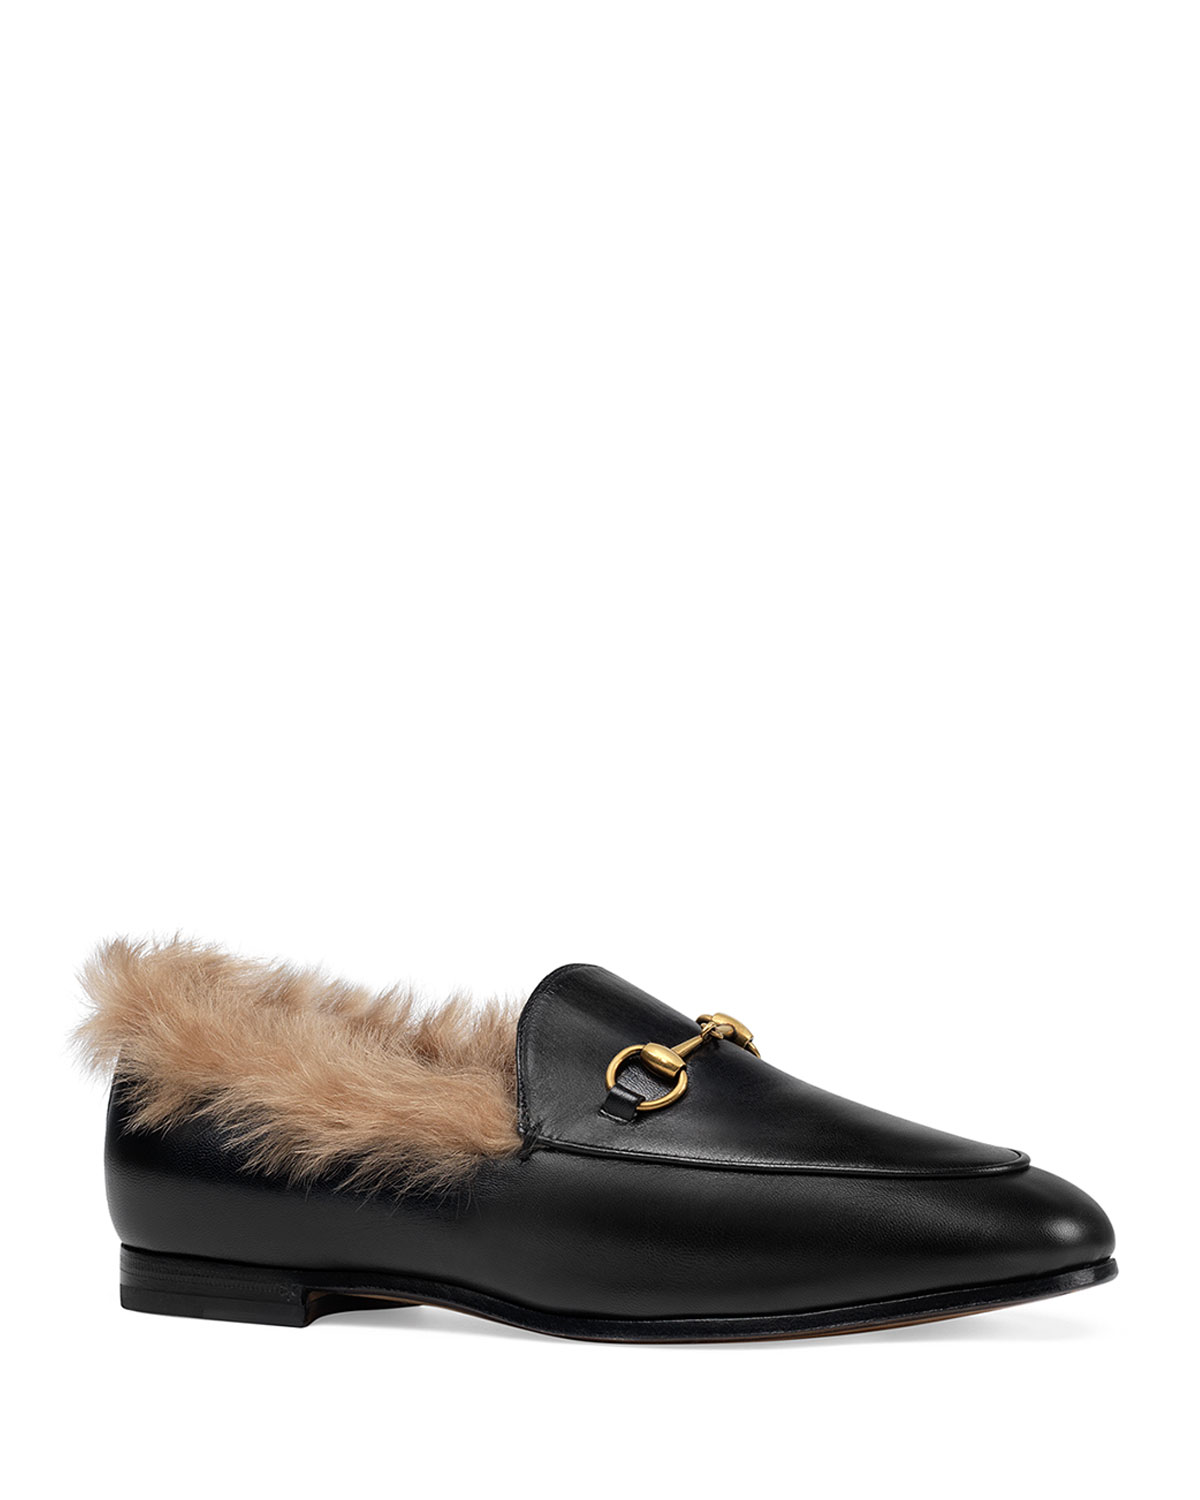 b6cff3b42 Gucci 10mm Jordaan Leather And Fur Loafer | Neiman Marcus